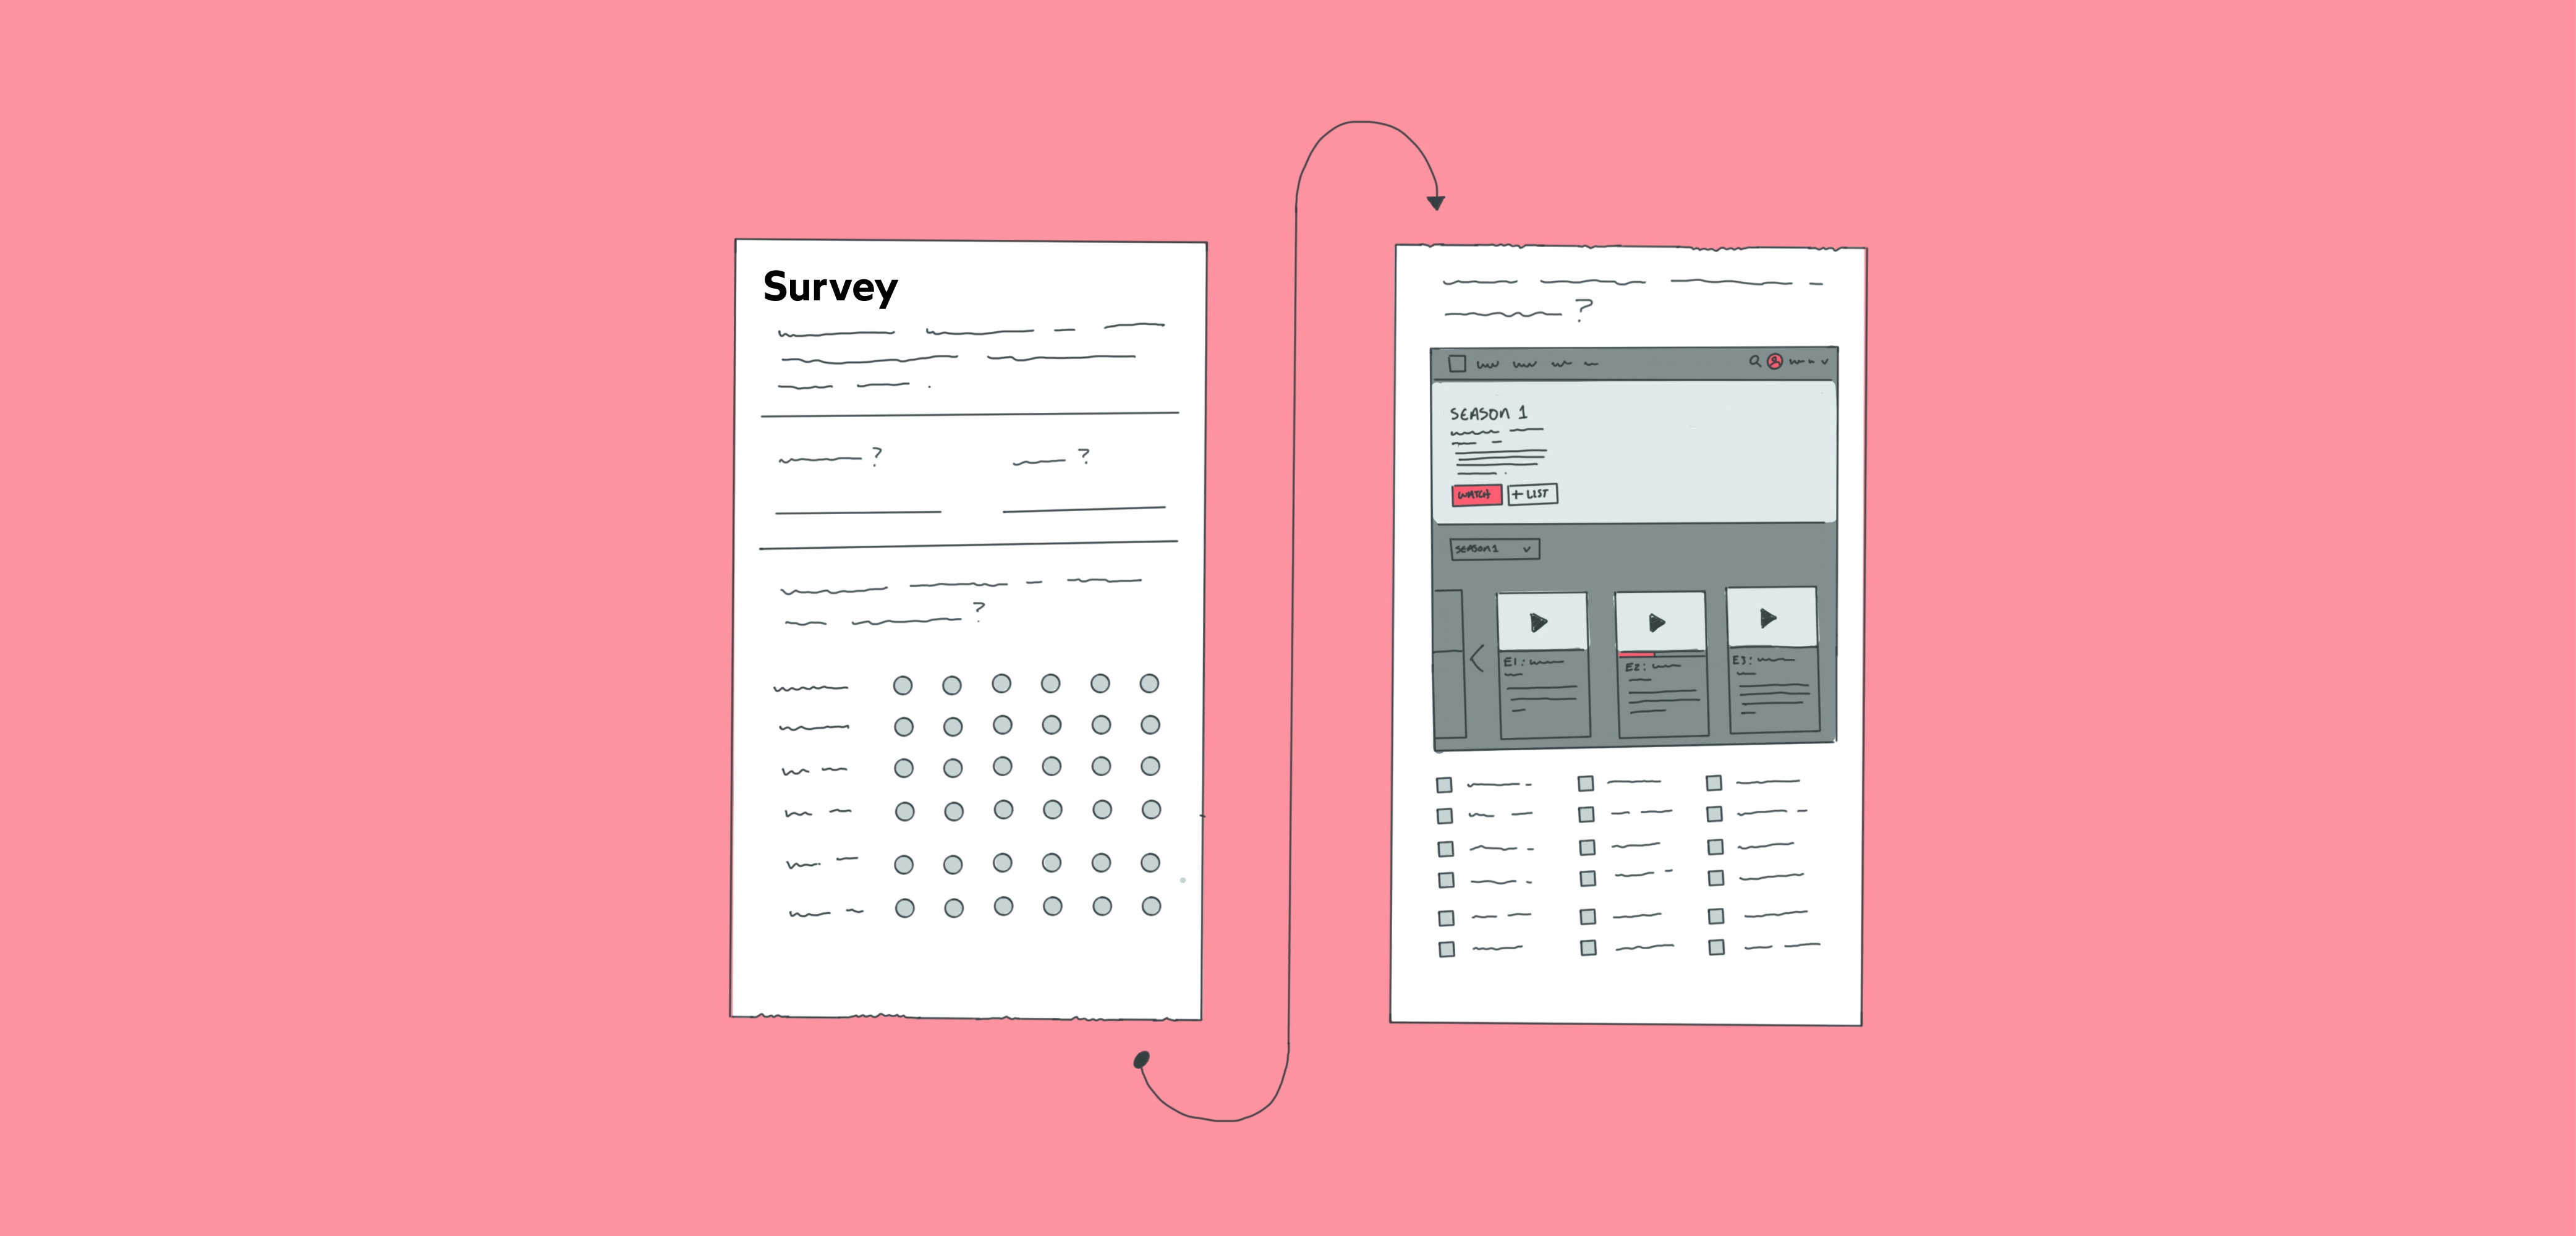 Testing a product's brand attributes through user surveys